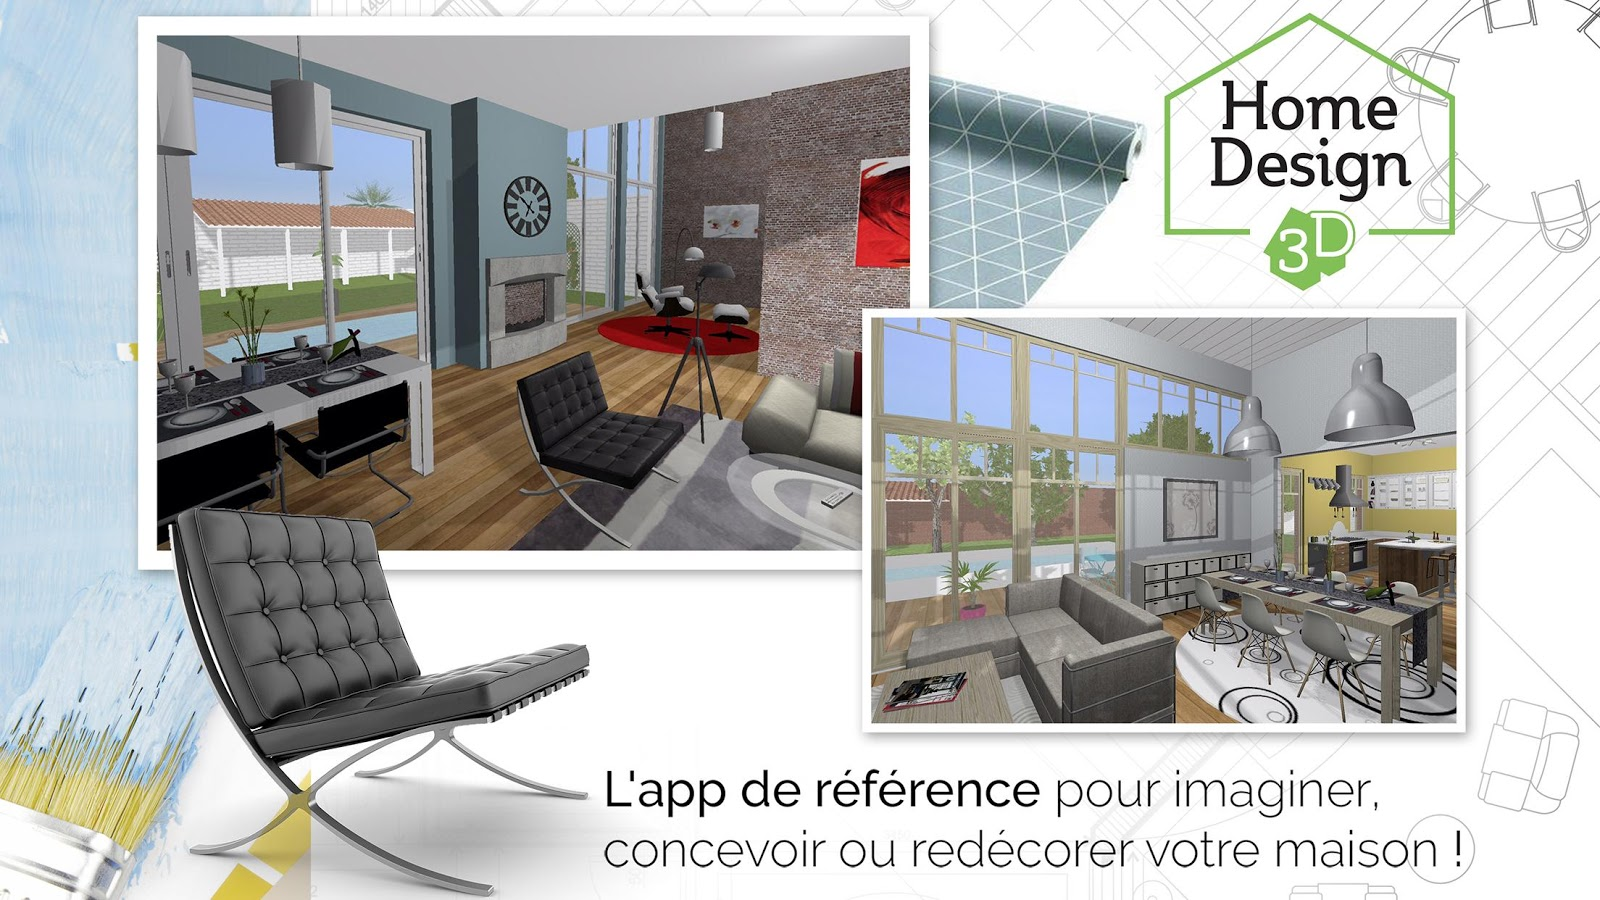 Home design 3d freemium applications android sur Online 3d home design tool